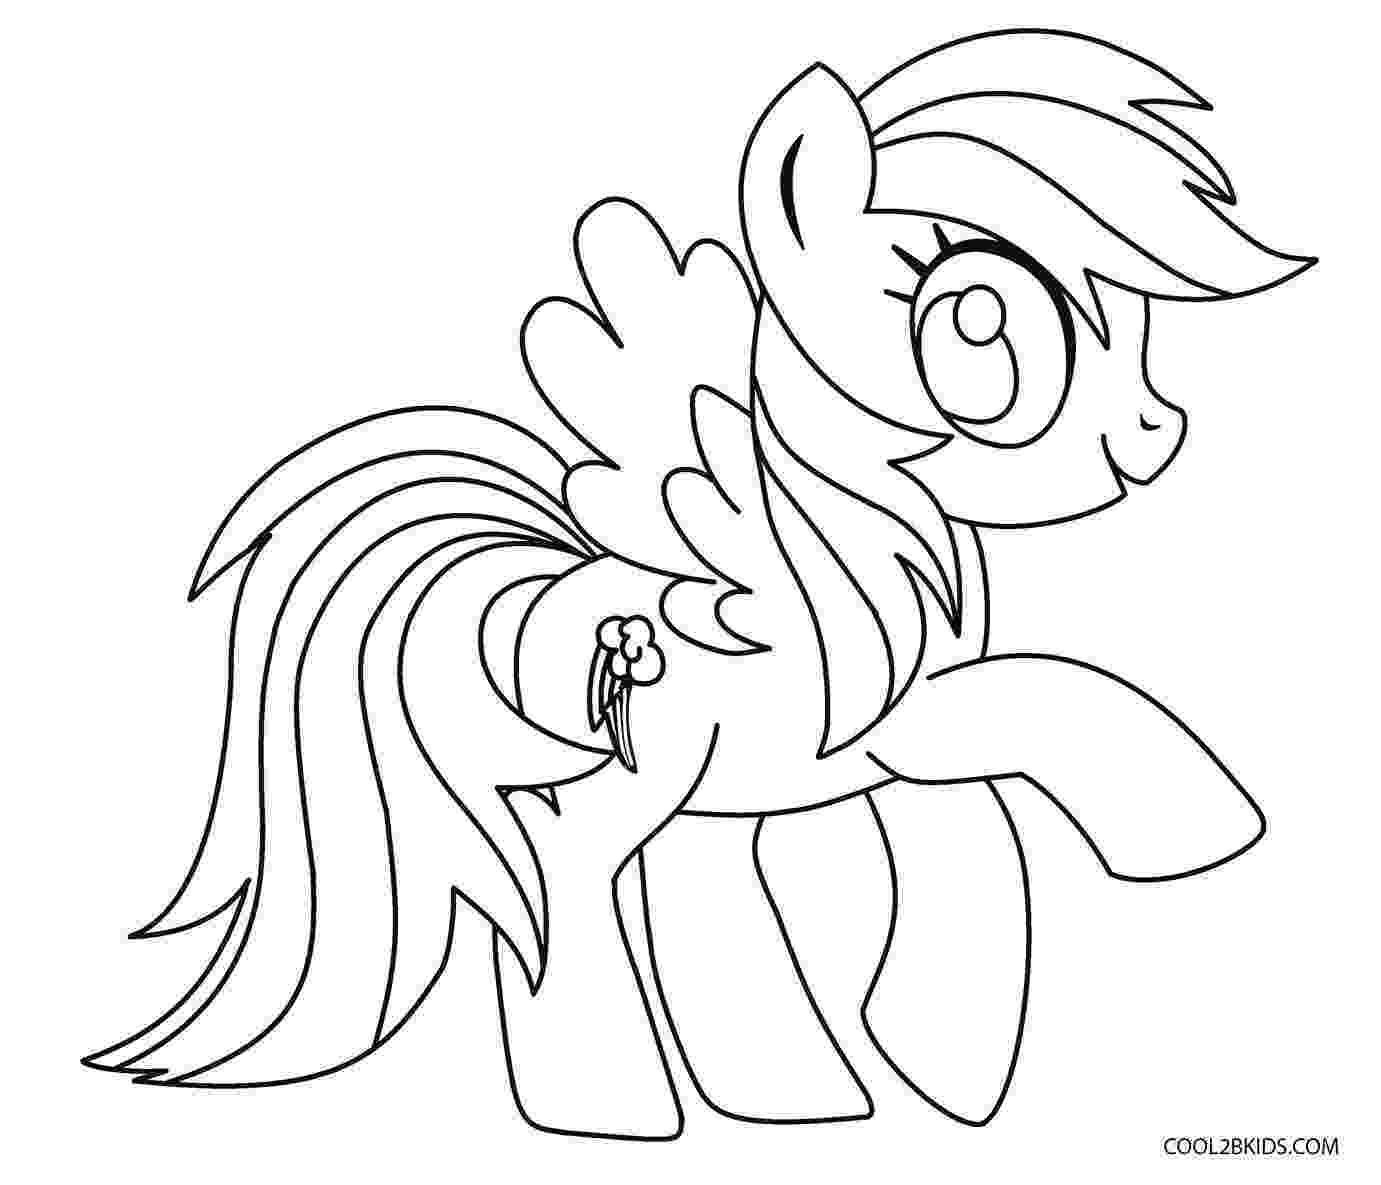 colouring pages pony free printable my little pony coloring pages for kids pony colouring pages